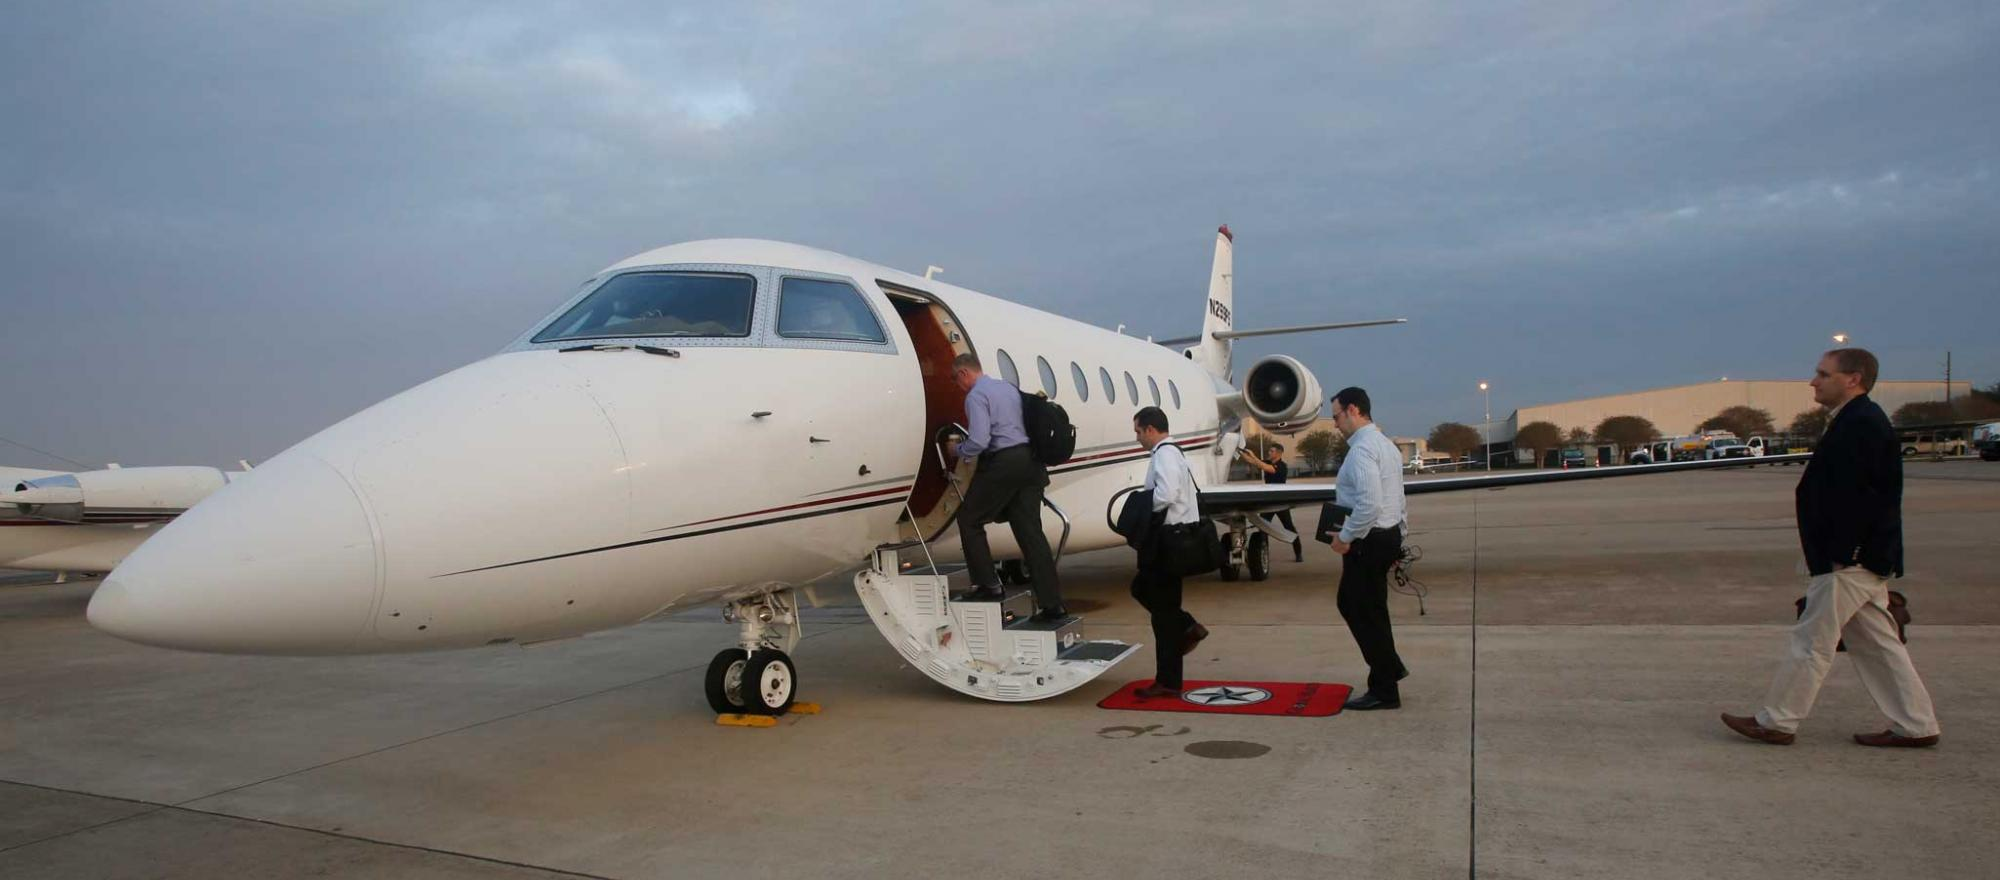 People getting into private jet